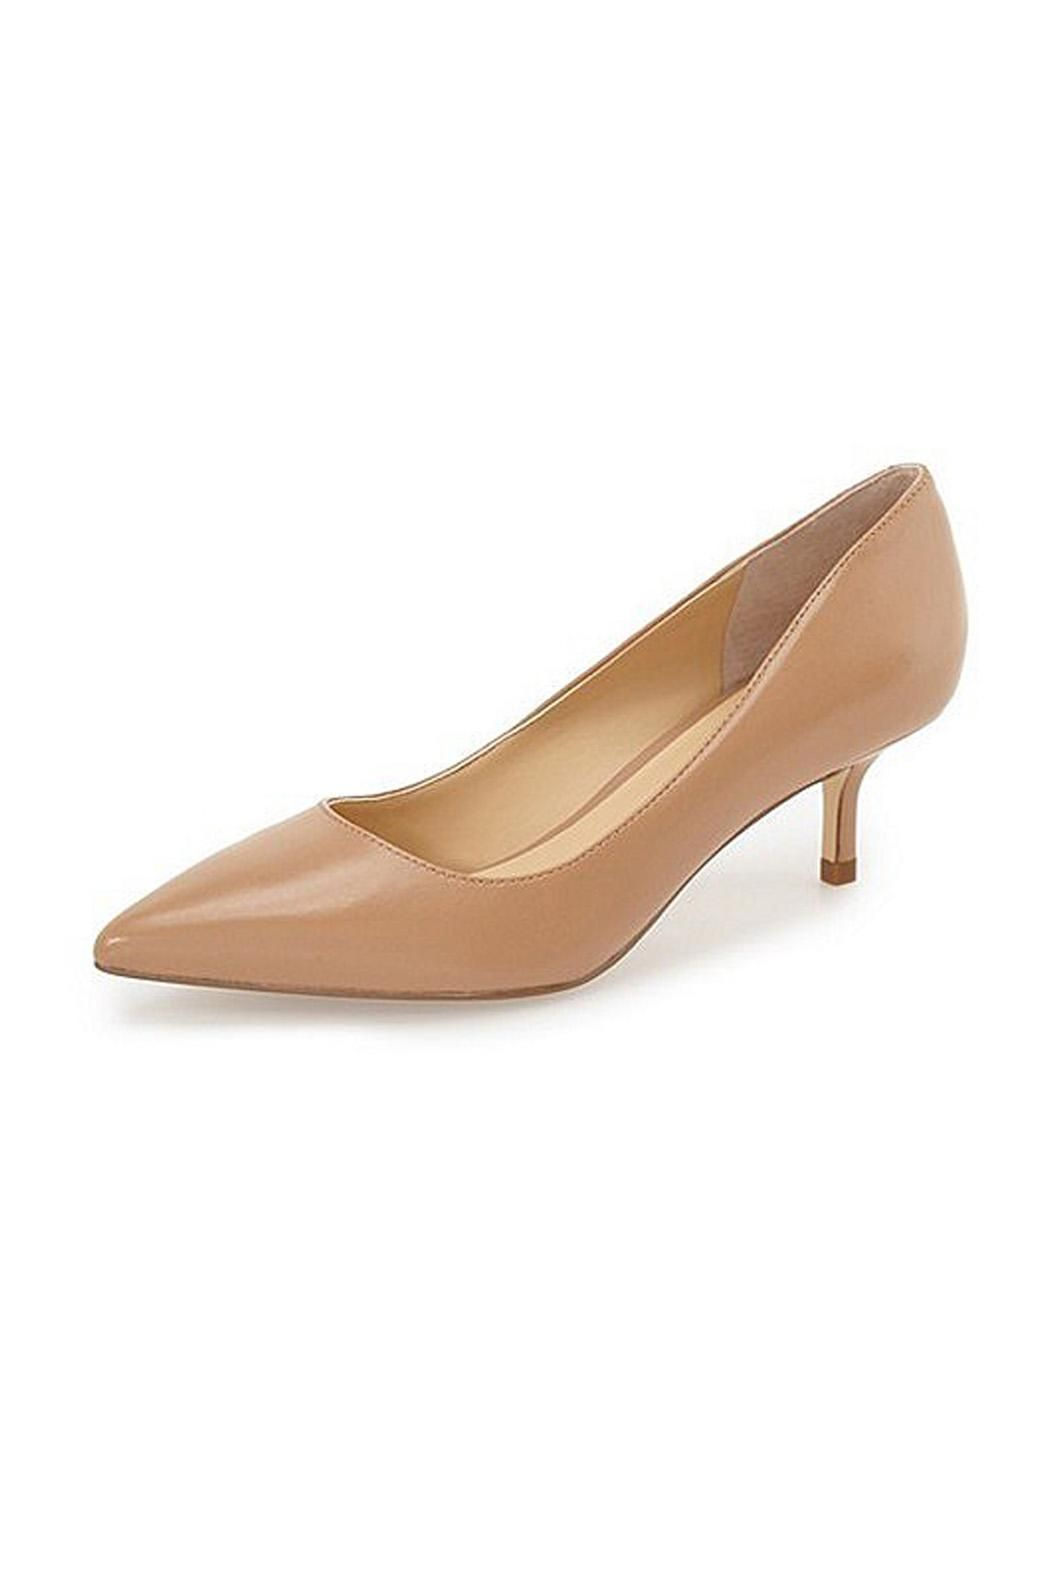 7ec41f3088 Ivanka Trump Athyna Kitten Heel Nude A svelte pointy toe and classic kitten  heel combine for a perennially chic pump. 2 1/4